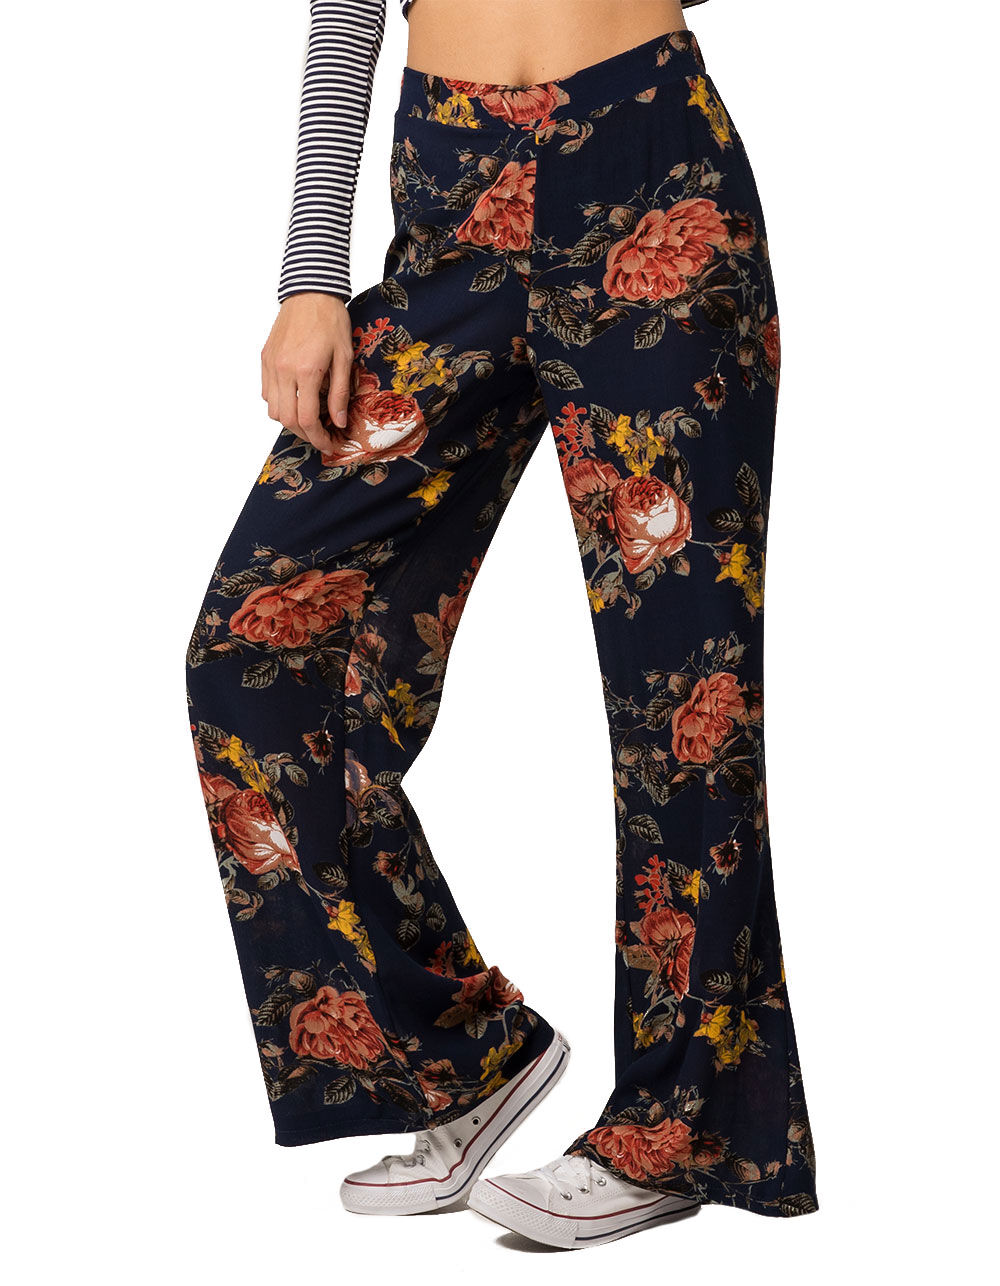 SKY AND SPARROW FLORAL WIDE LEG PANTS